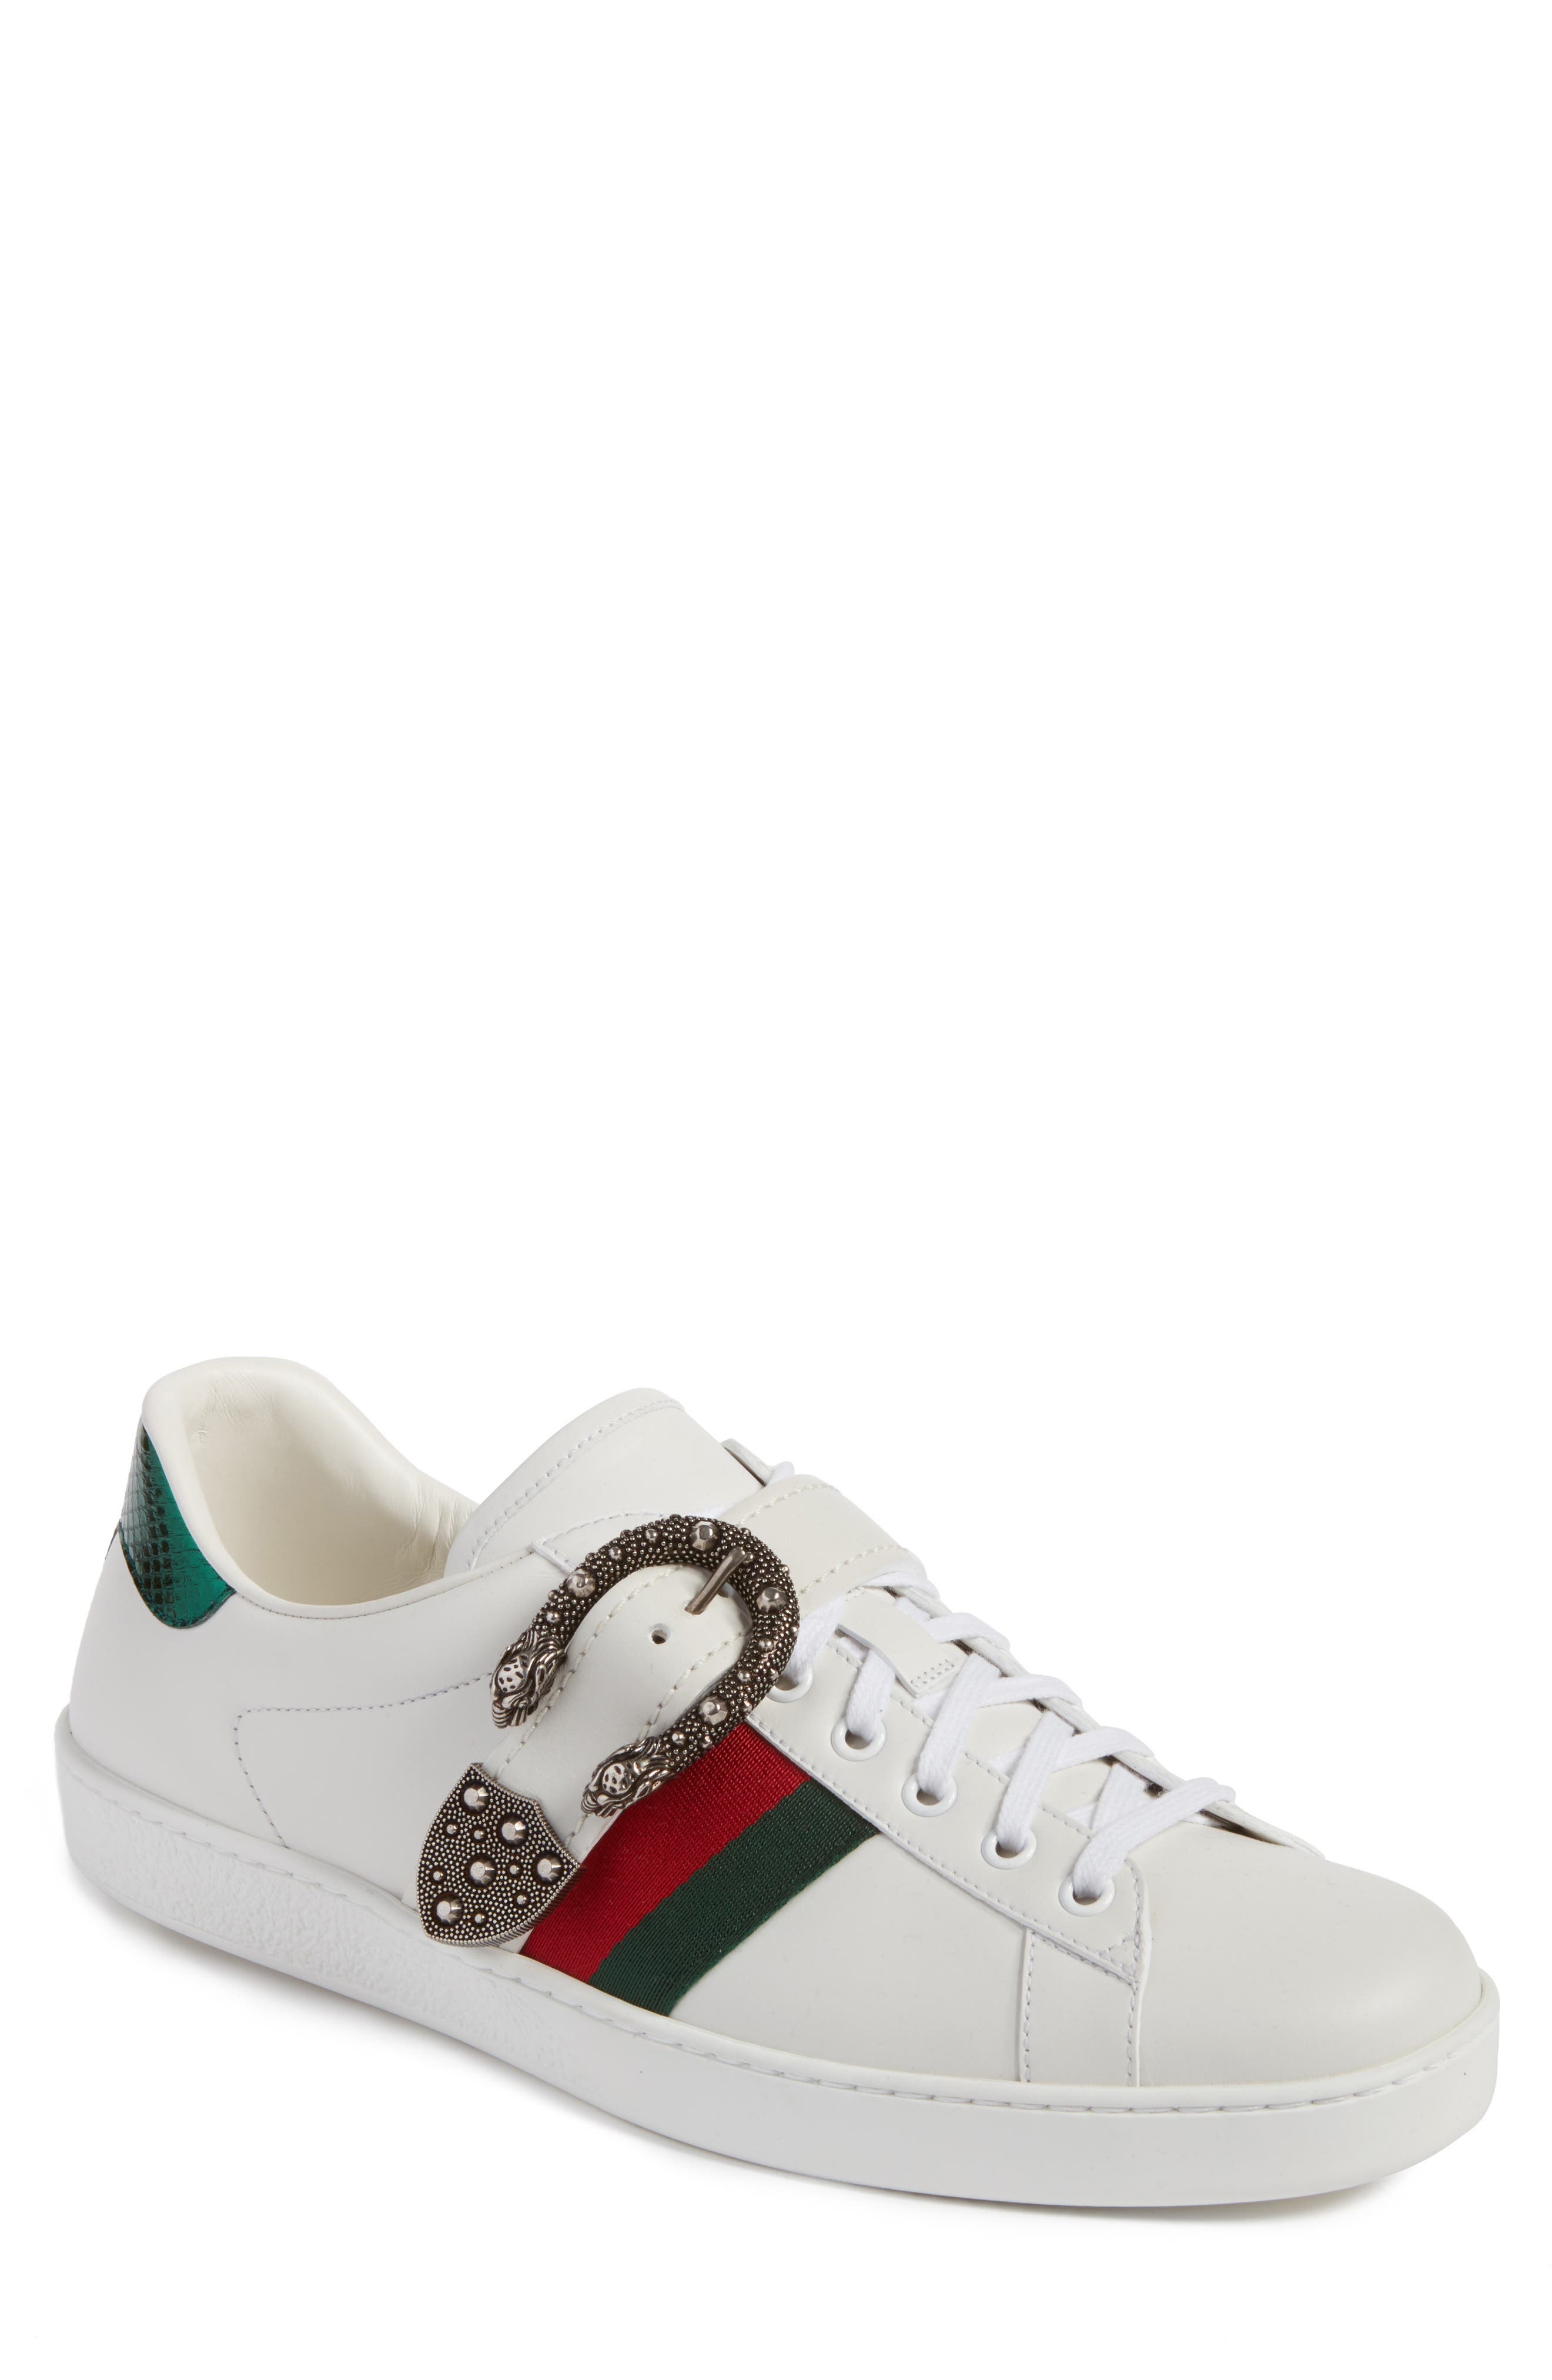 New Ace Dionysus Buckle Low Top Sneaker,                         Main,                         color, White With Silver Hardware